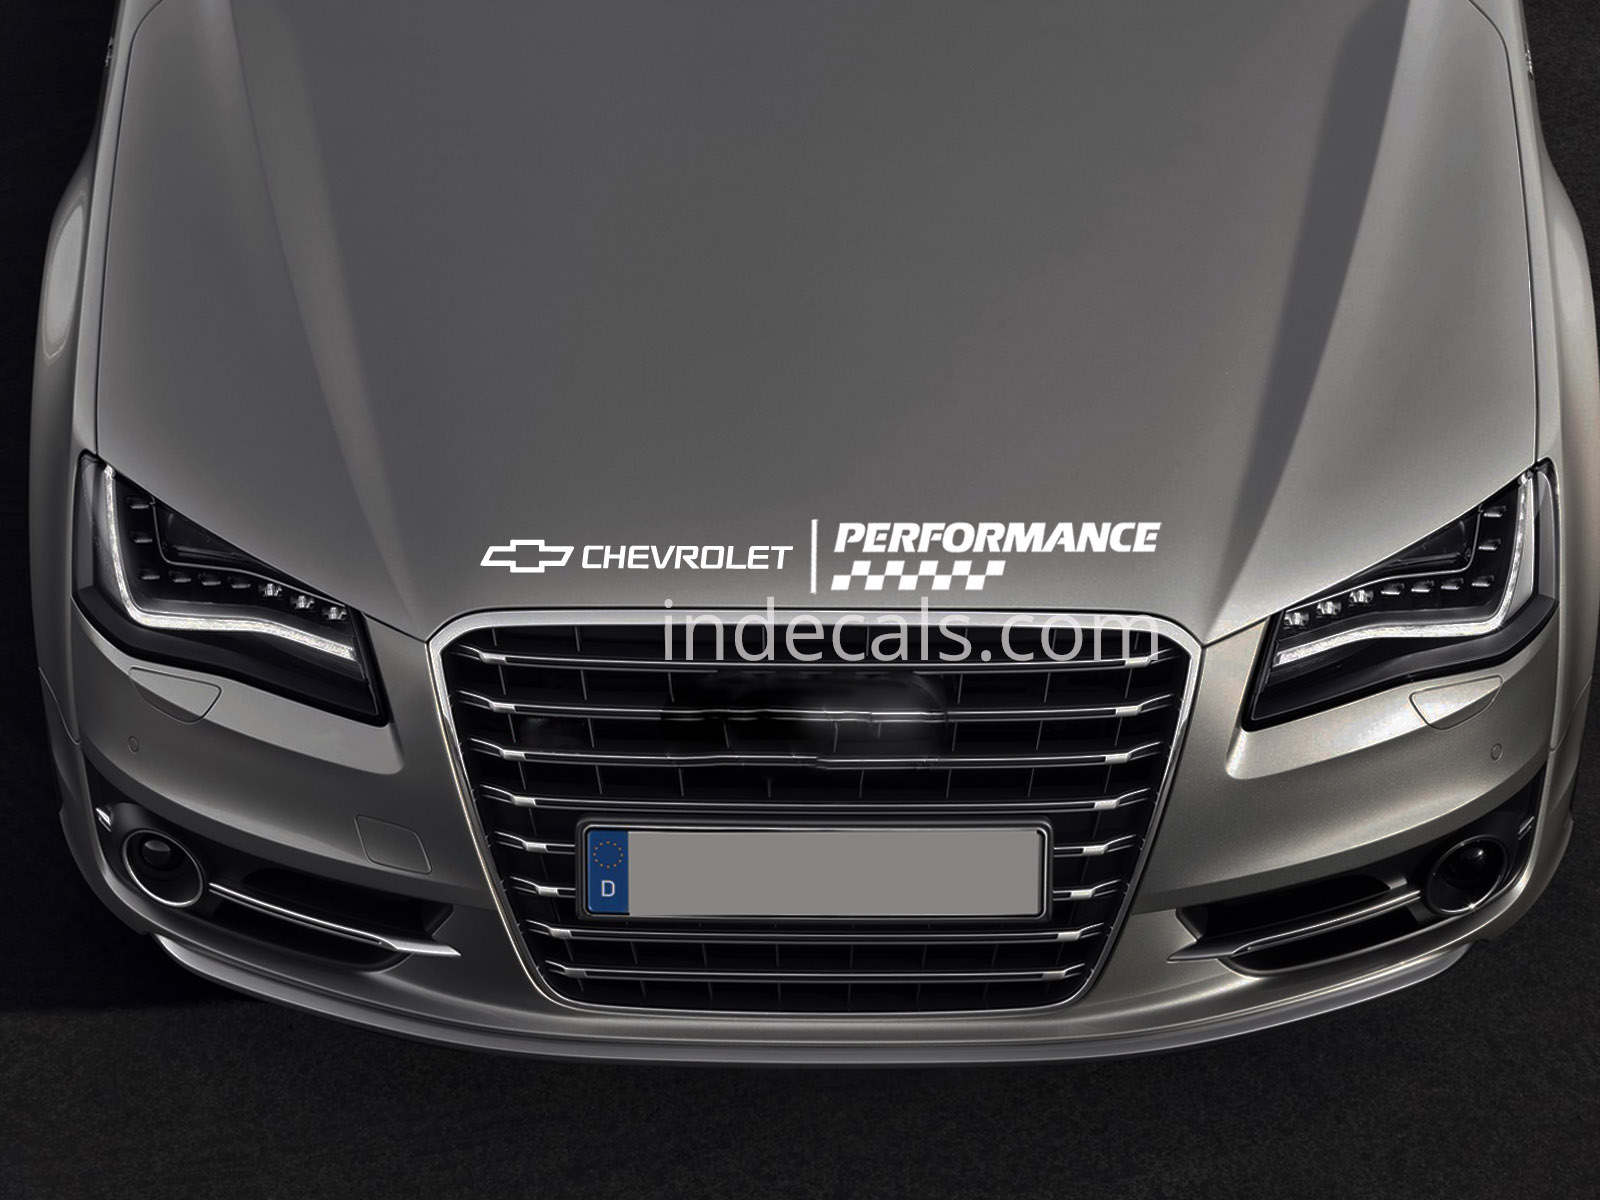 1 x Chevrolet Peformance Sticker for Bonnet - White